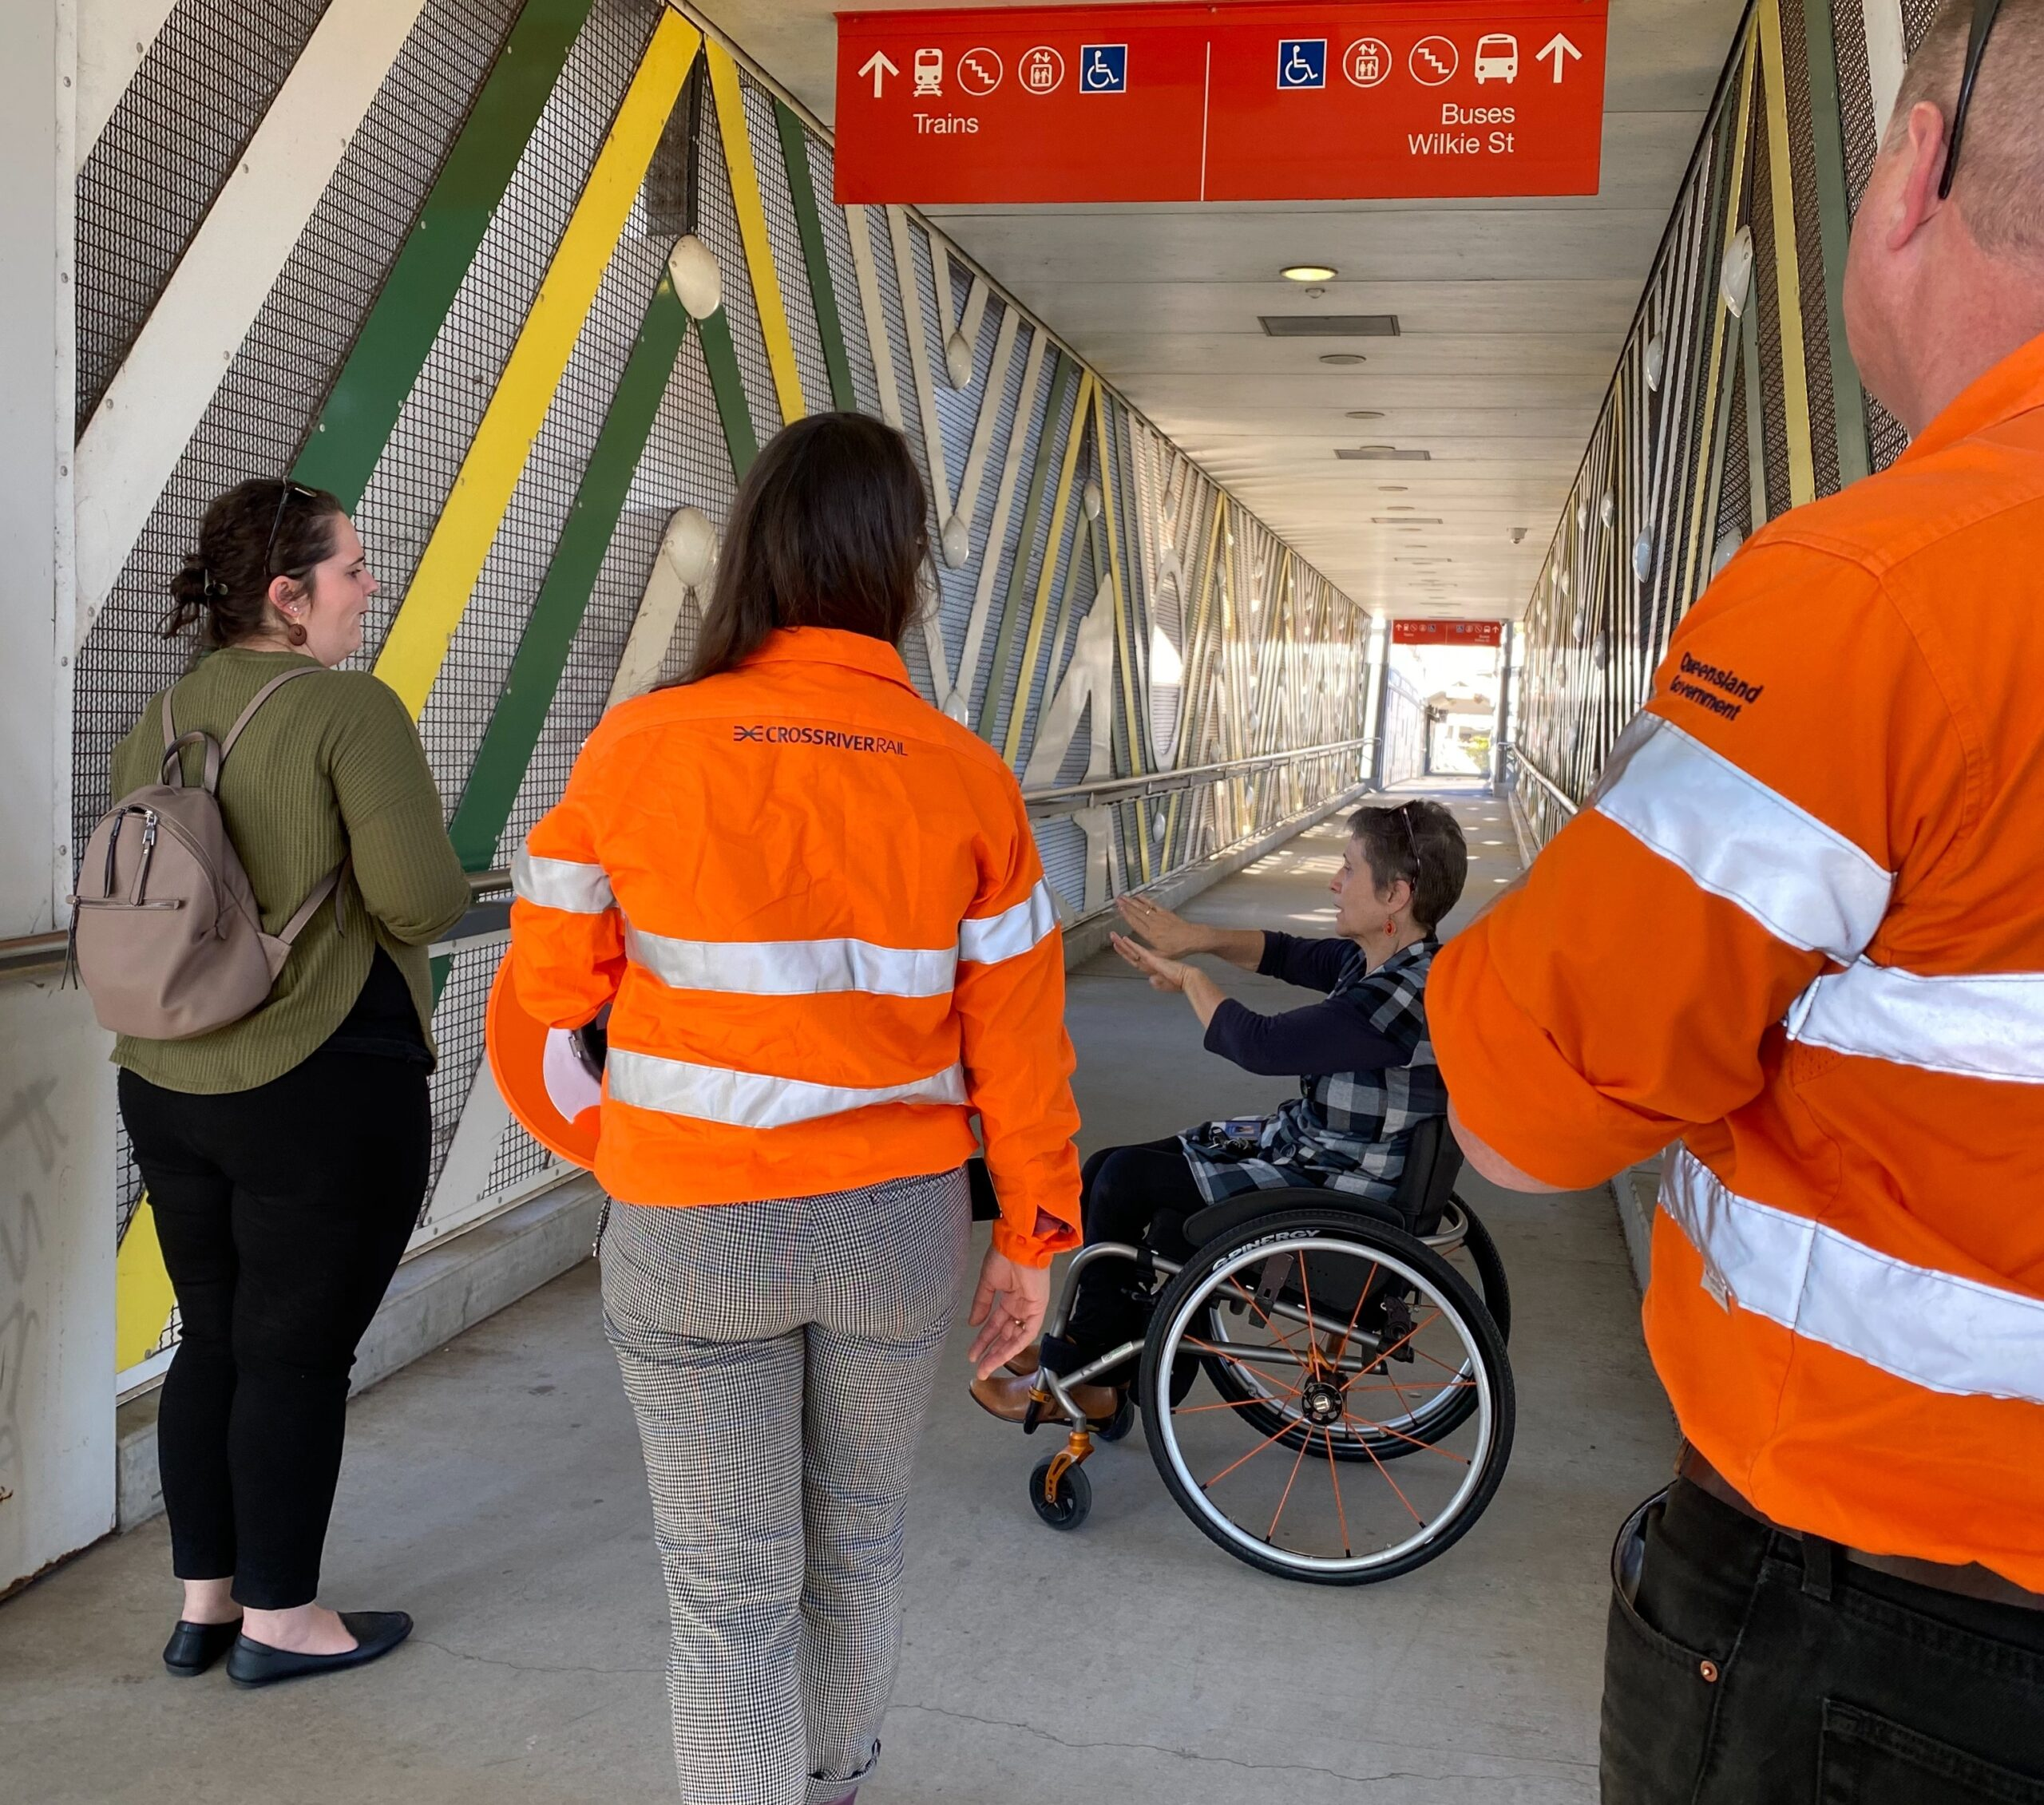 members of the Cross River Rail Accessibility Reference Group attend a site visit at Yeerongpilly station to provide feedback on station design including but not limited to paths of travel and signage.